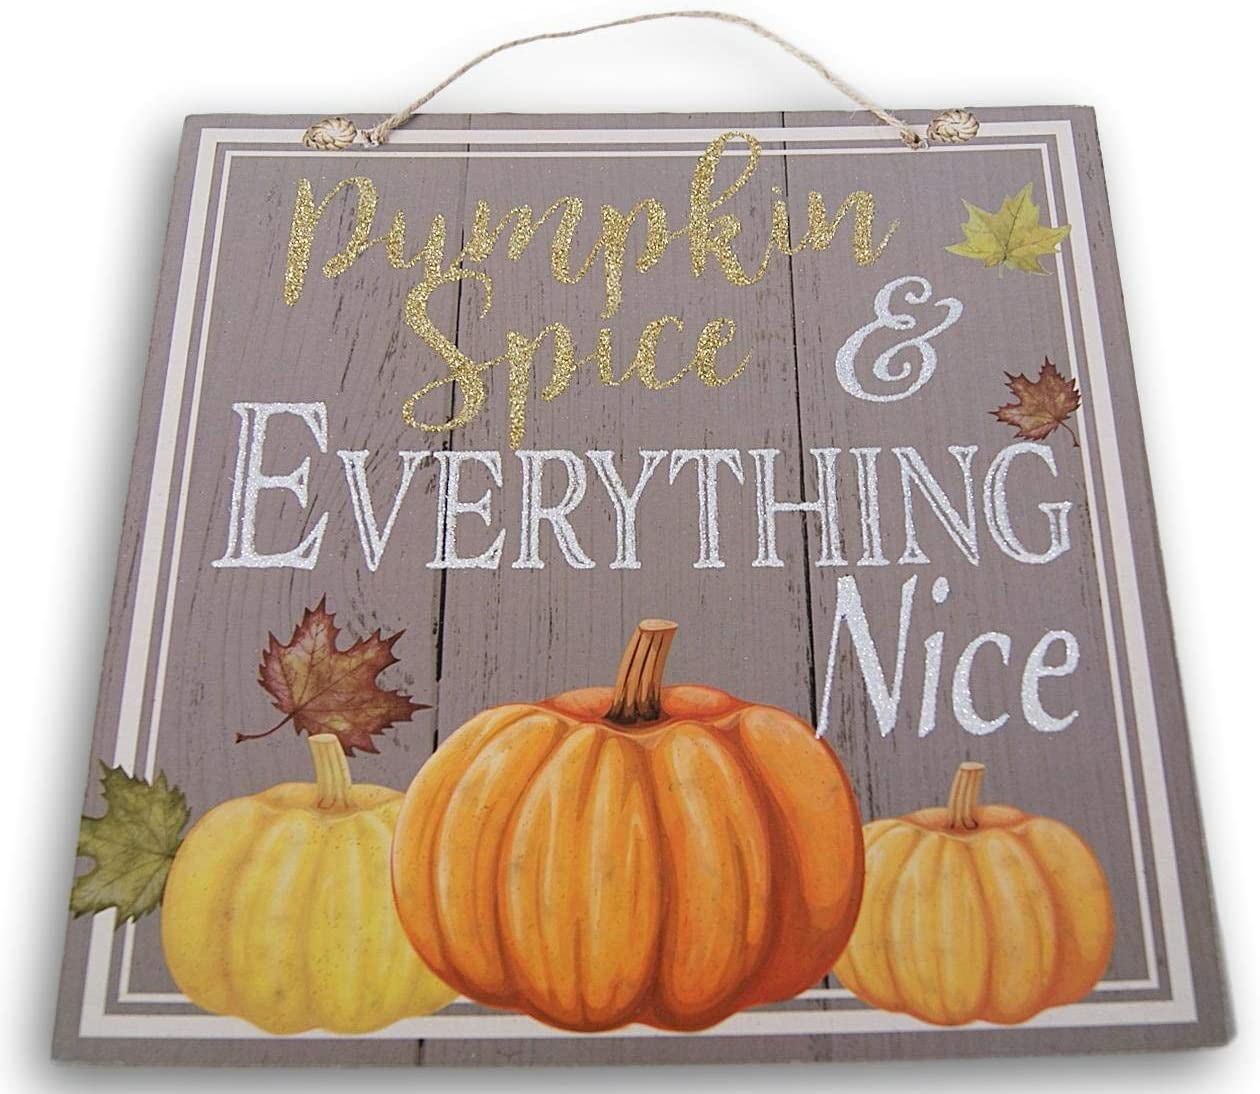 Autumn Decor Glittery ''Pumpkin Spice & Everything Nice'' Plaque Sign - 11 x 11 Inches